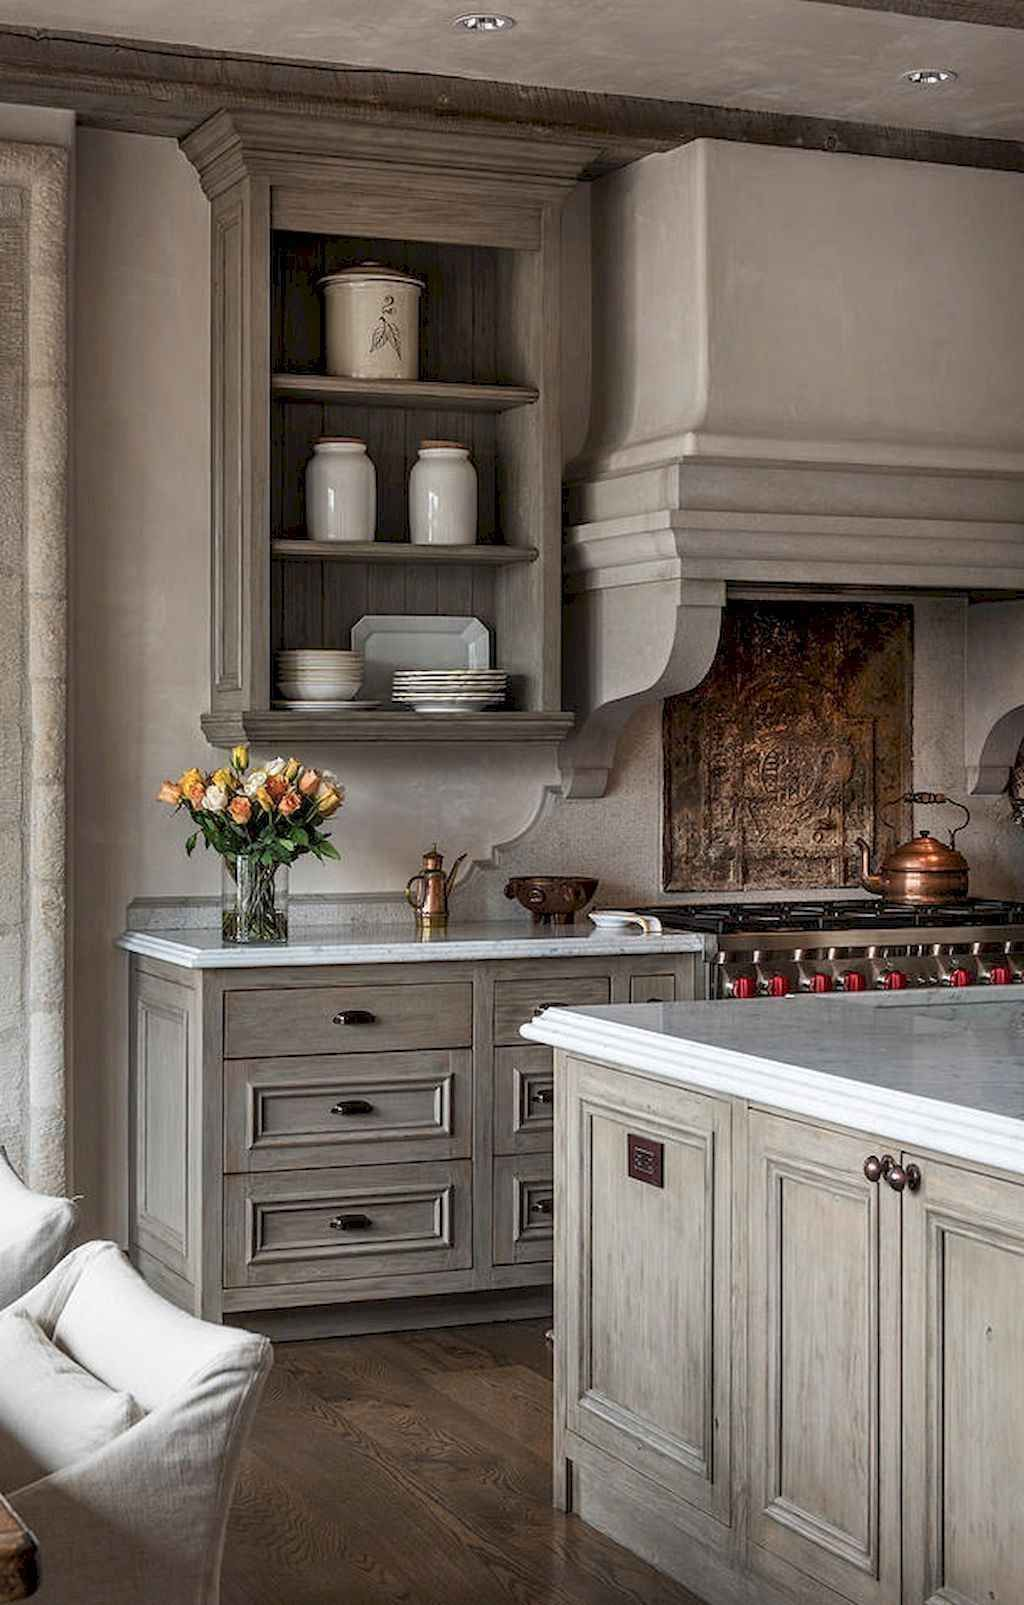 01 gorgeous modern farmhouse kitchen cabinets decor ideas in 2020 country kitchen designs on kitchen remodel modern farmhouse id=17155